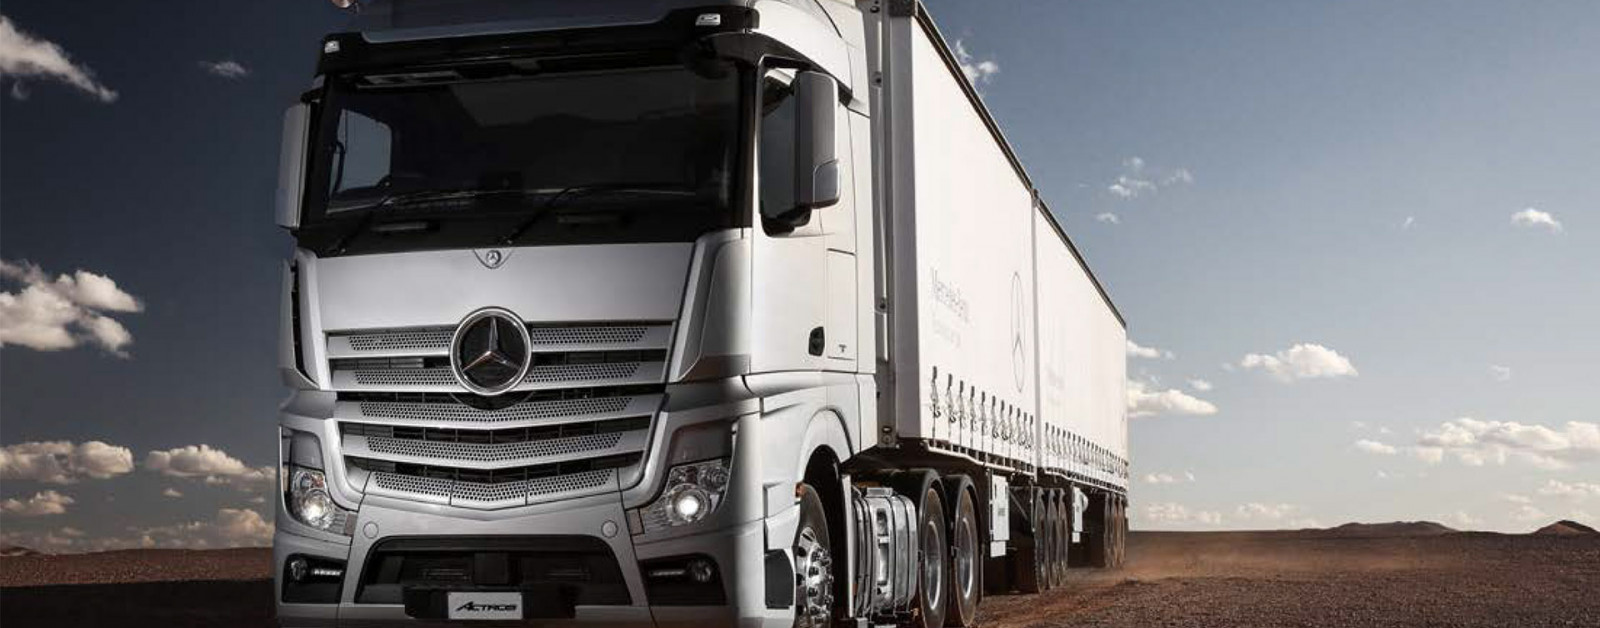 Actros Prime Movers